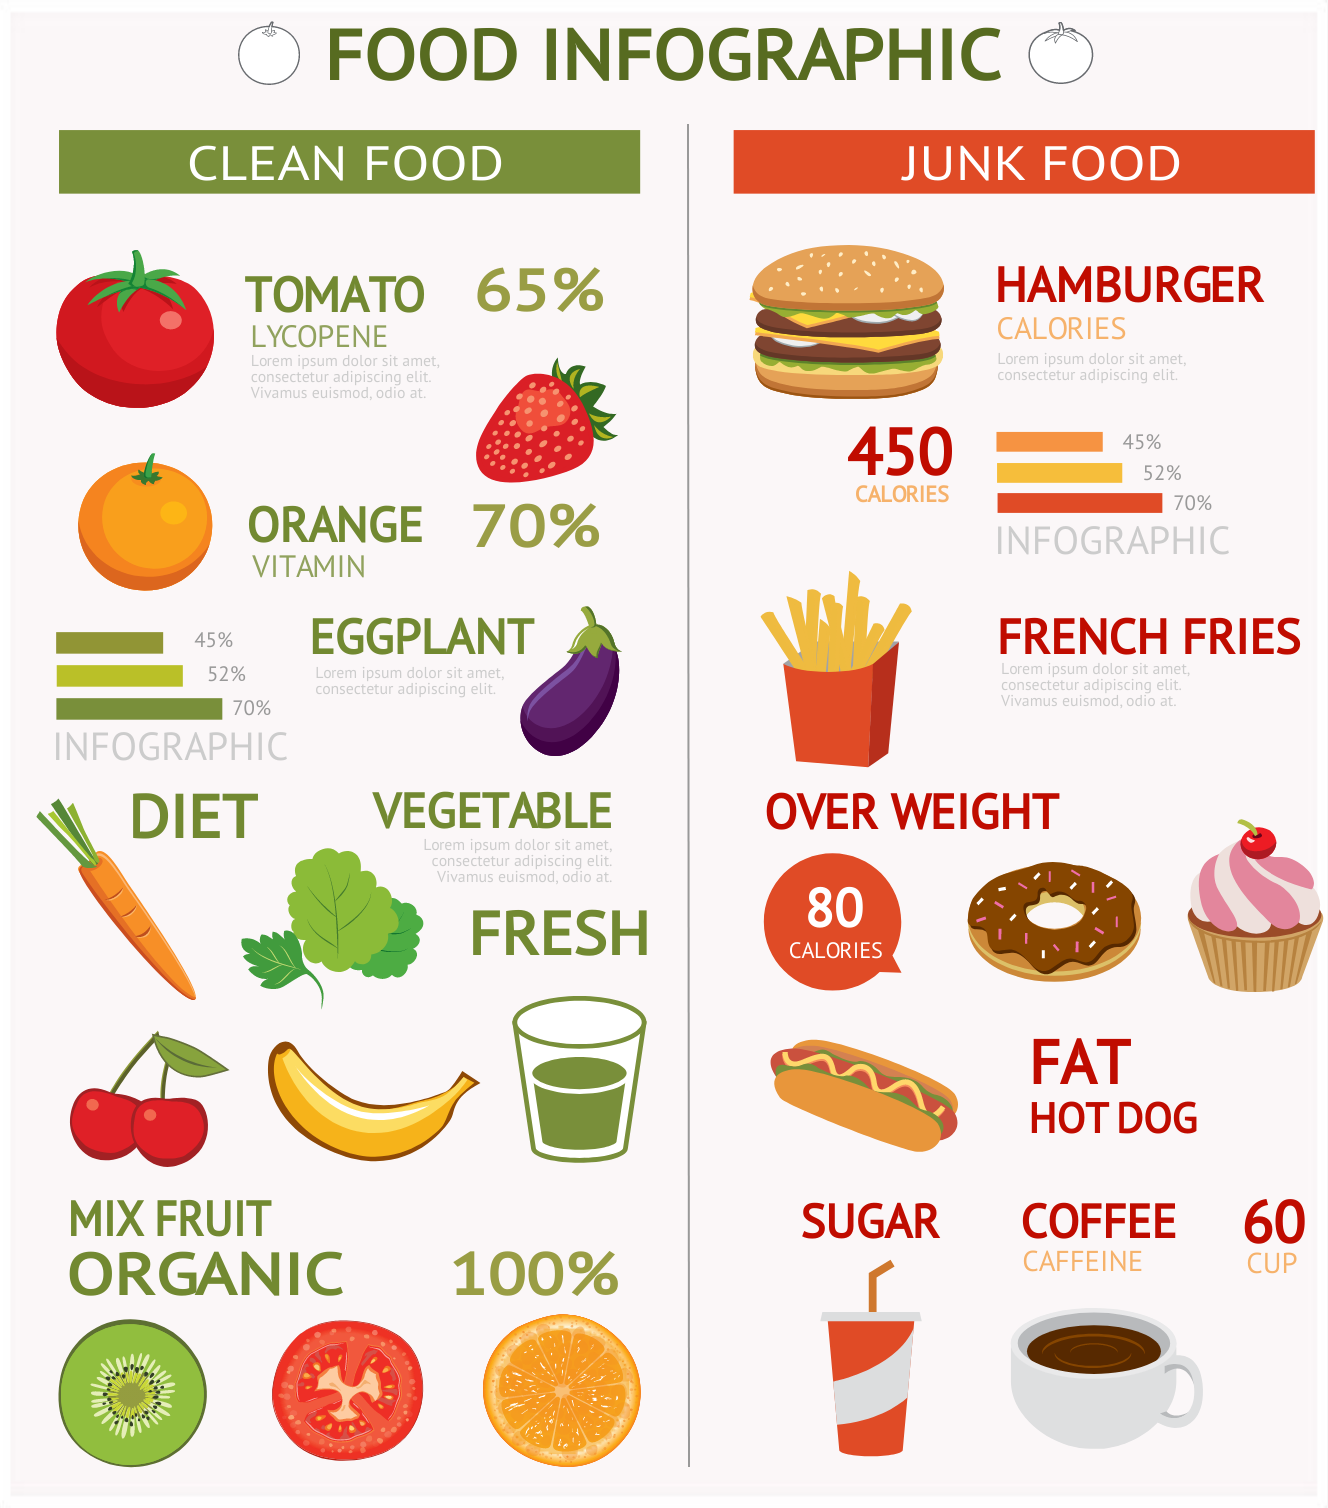 an infographic comparing clean food and junk food.